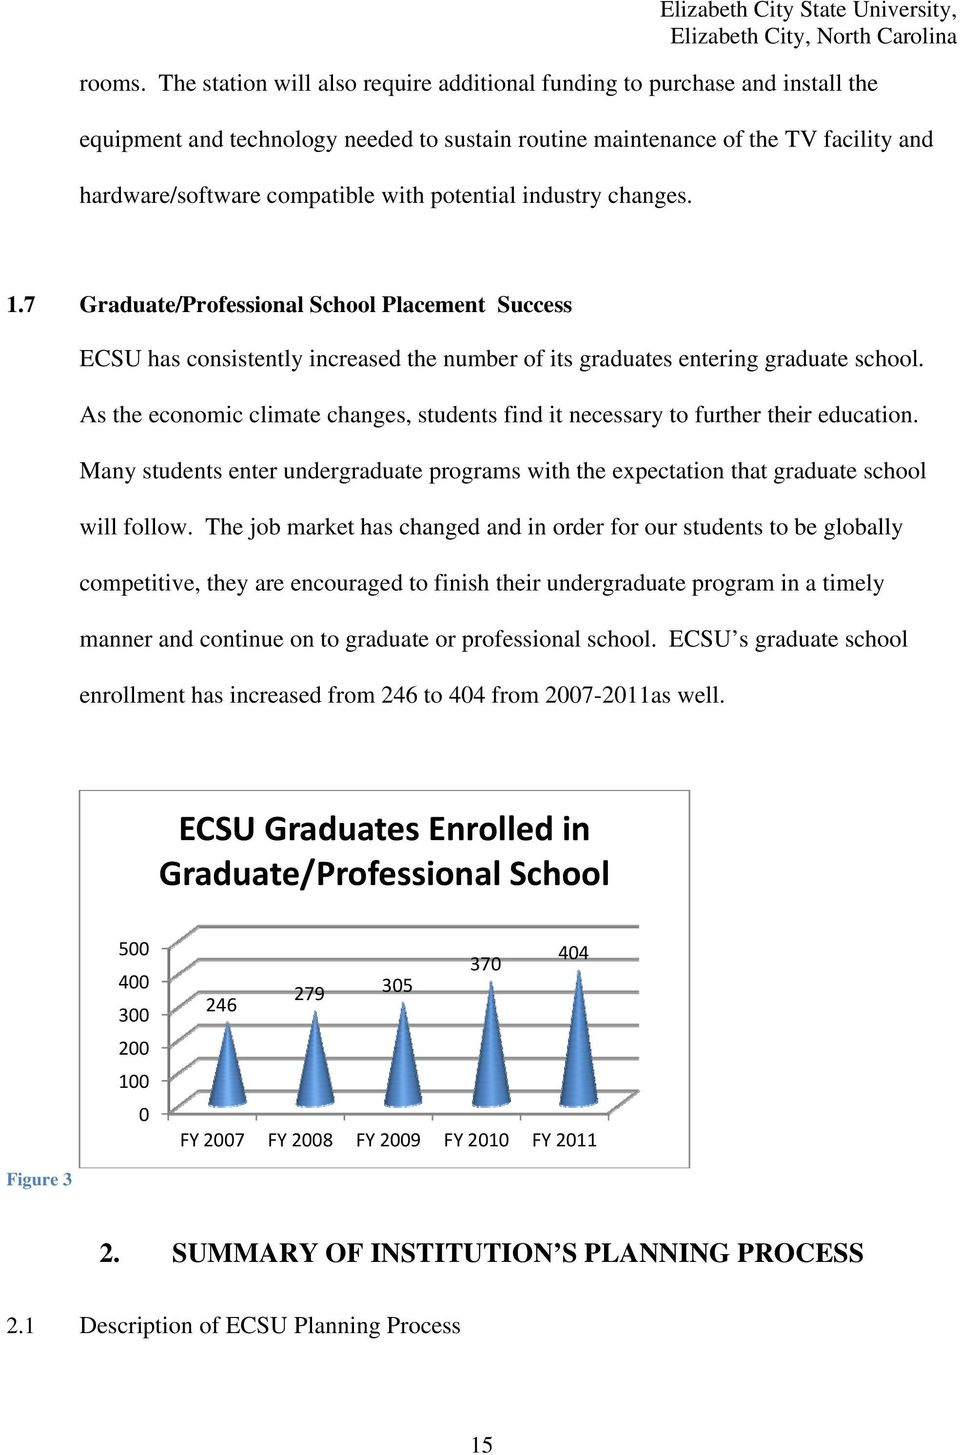 potential industry changes. 1.7 Graduate/Professional School Placement Success ECSU has consistently increased the number of its graduates entering graduate school.